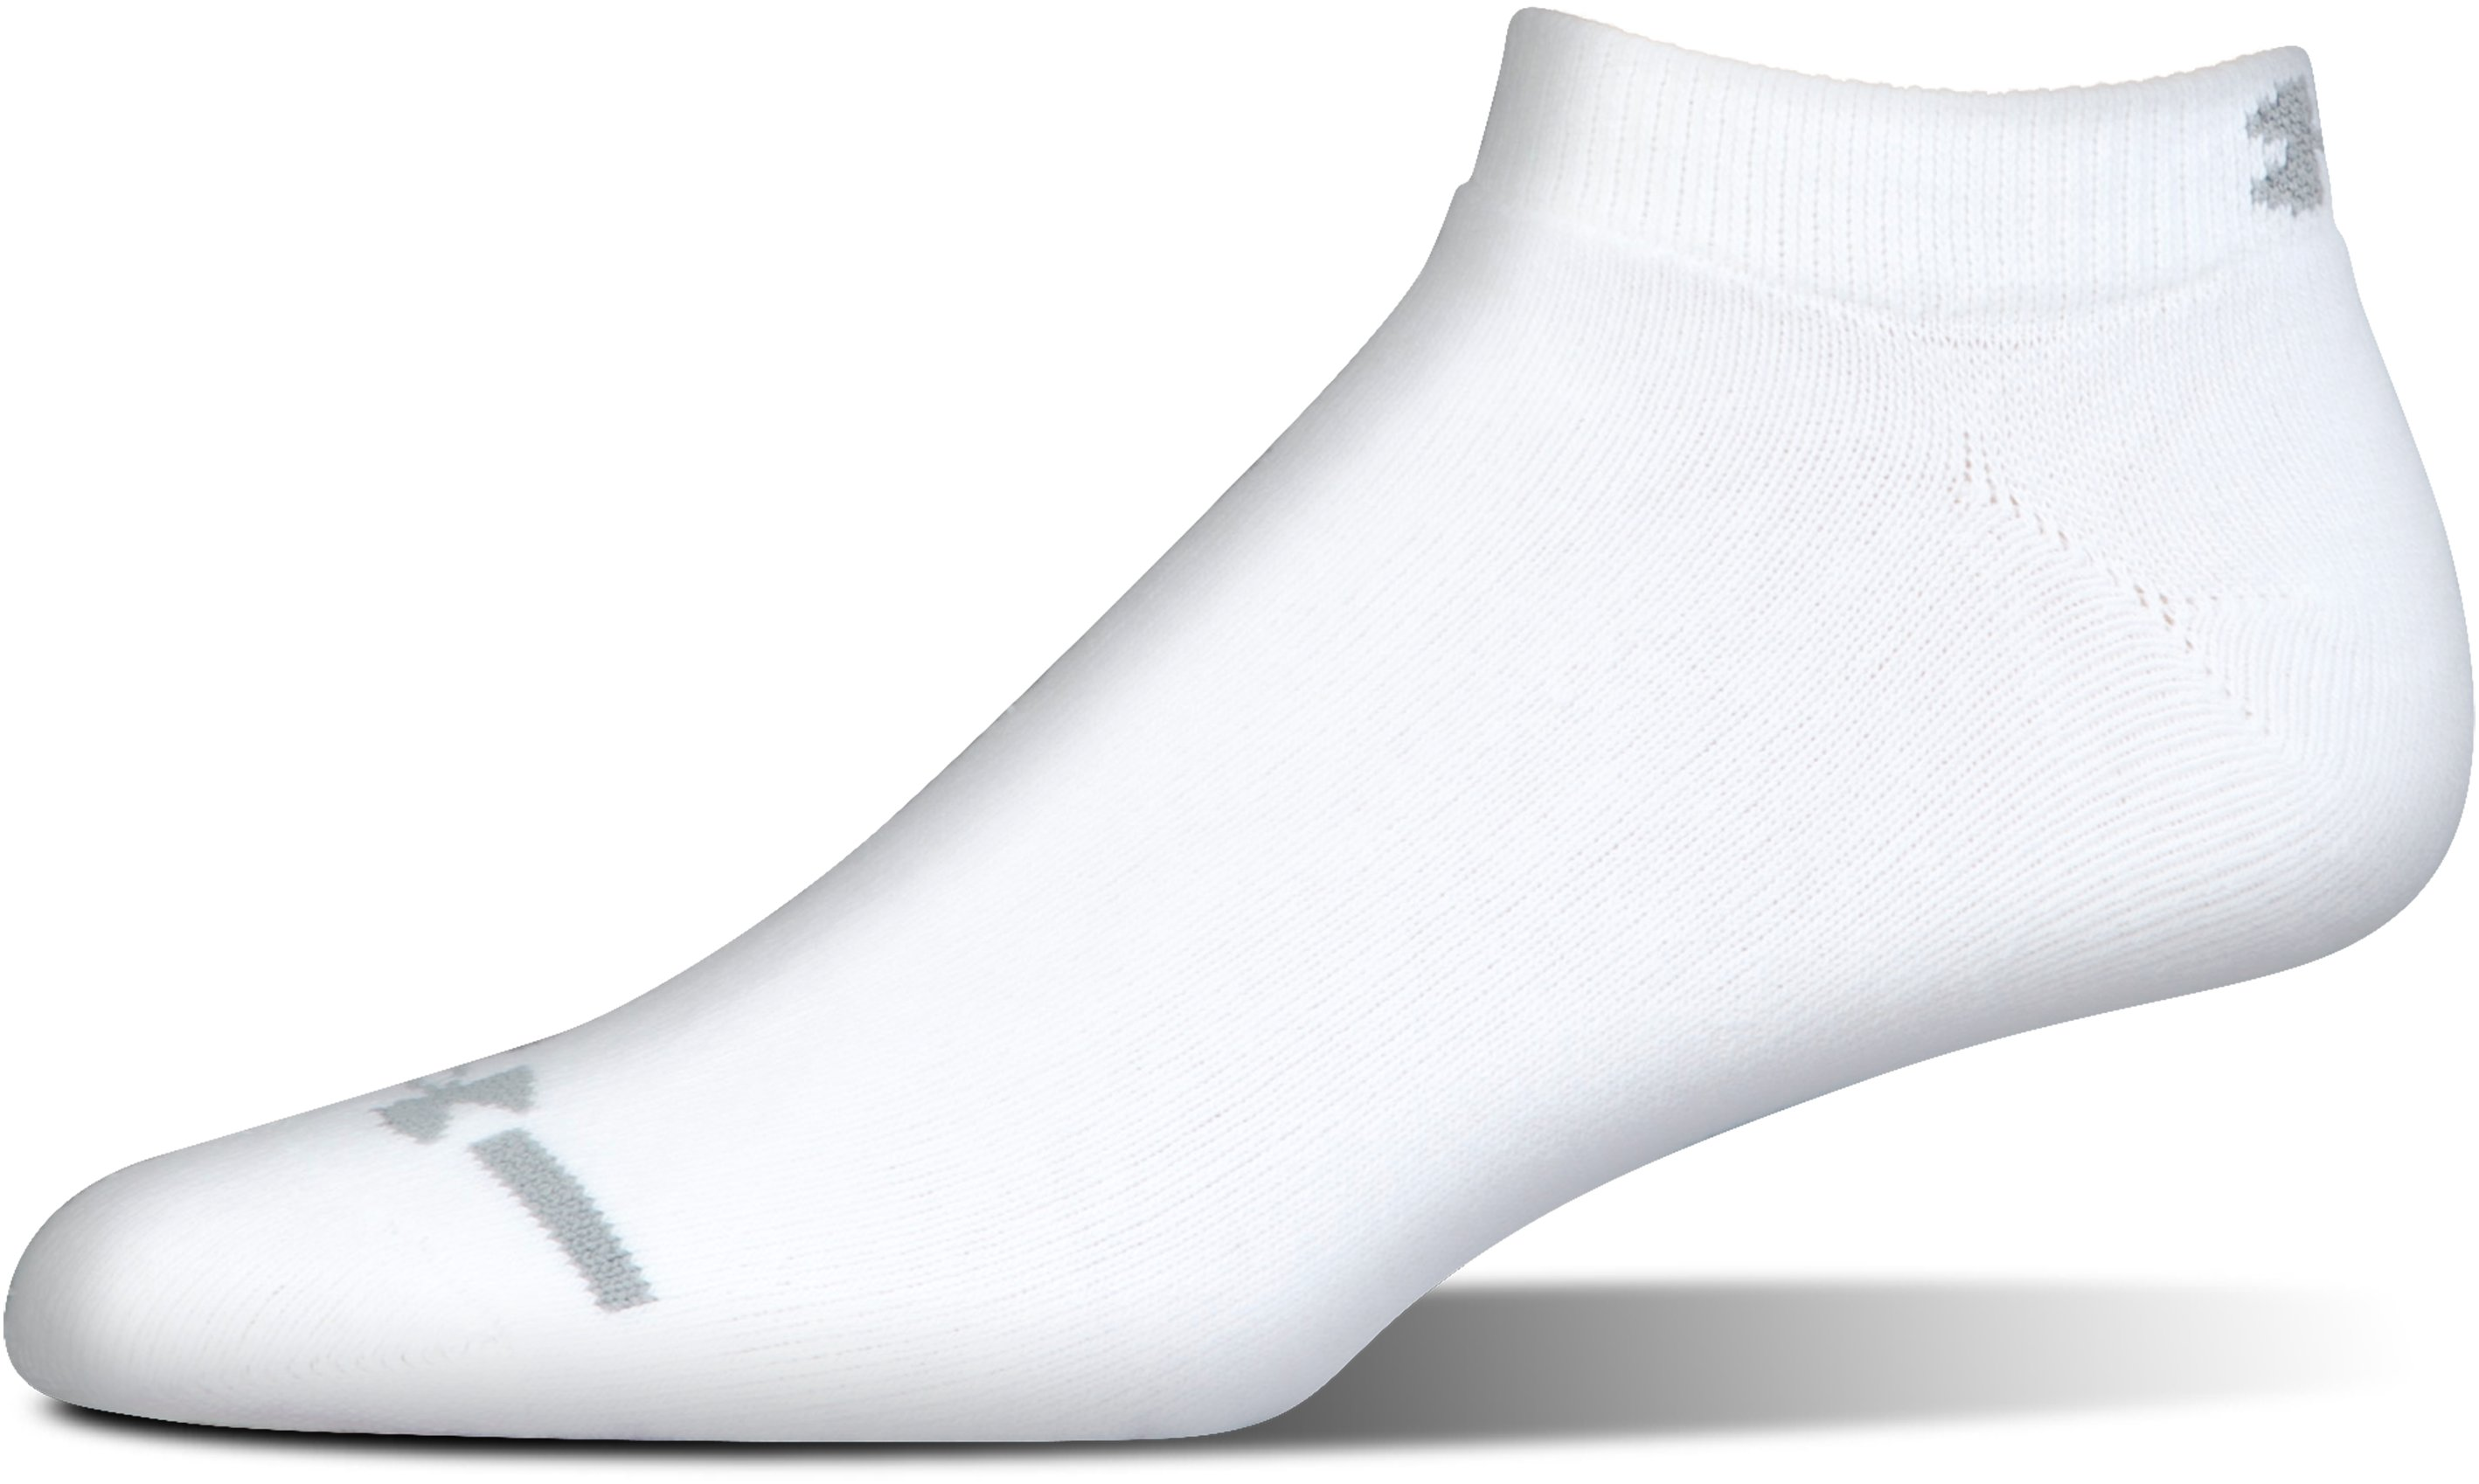 Men's Charged Cotton® No Show Socks 6-Pack, White